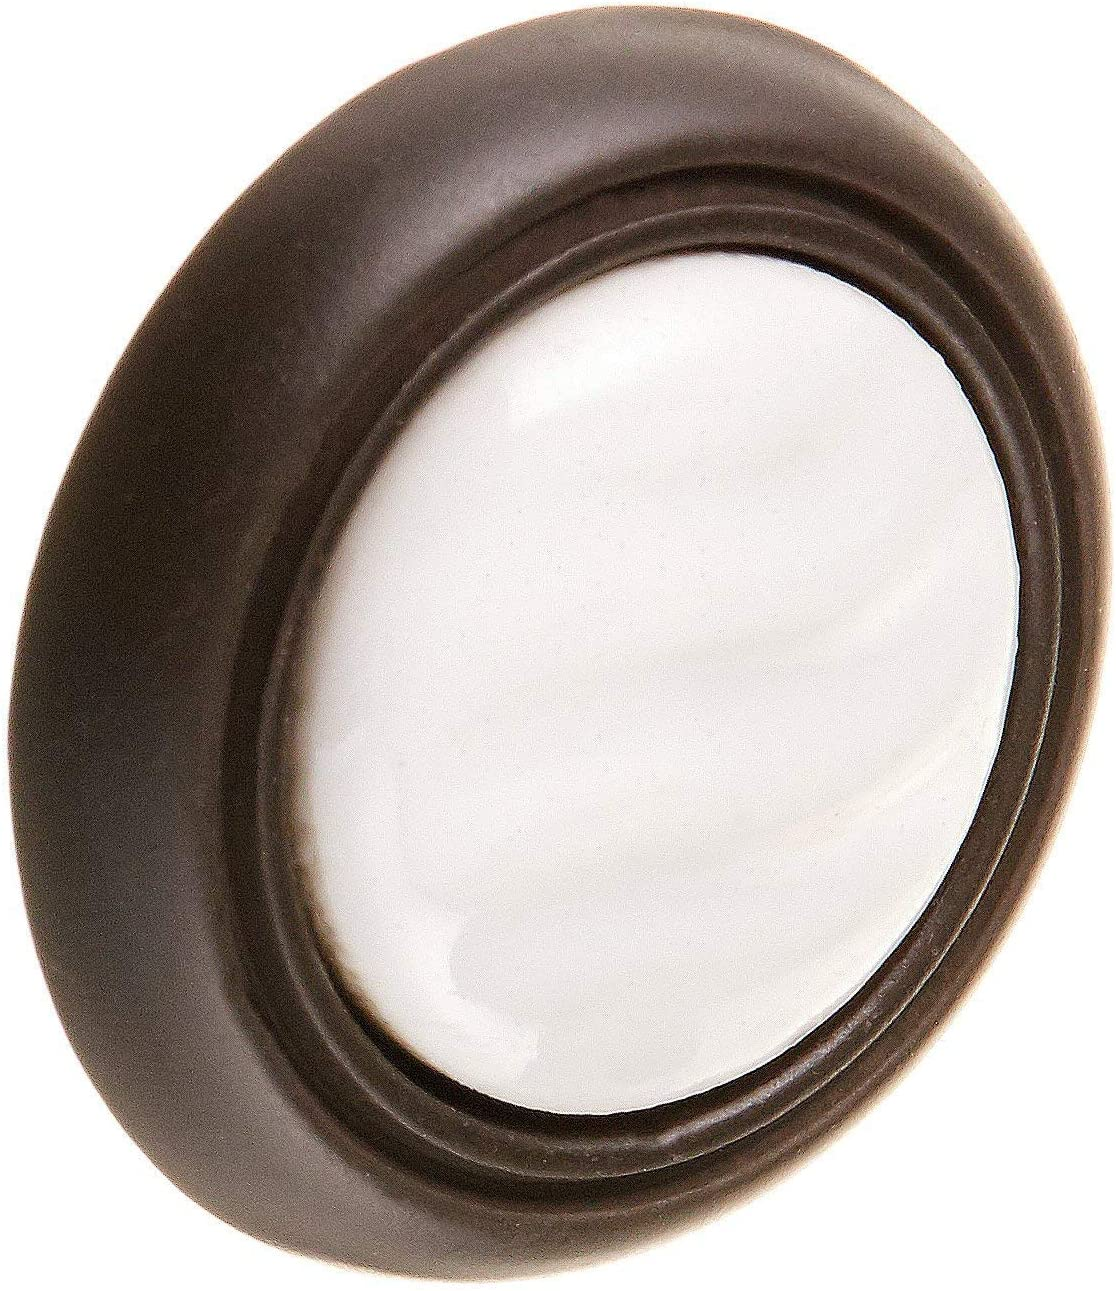 Cabinet Knobs 1-3//8 in. 1 piece Packaging May Vary Round Ceramic Inset Drawer Knobs Cabinet Hardware Statuary Bronze